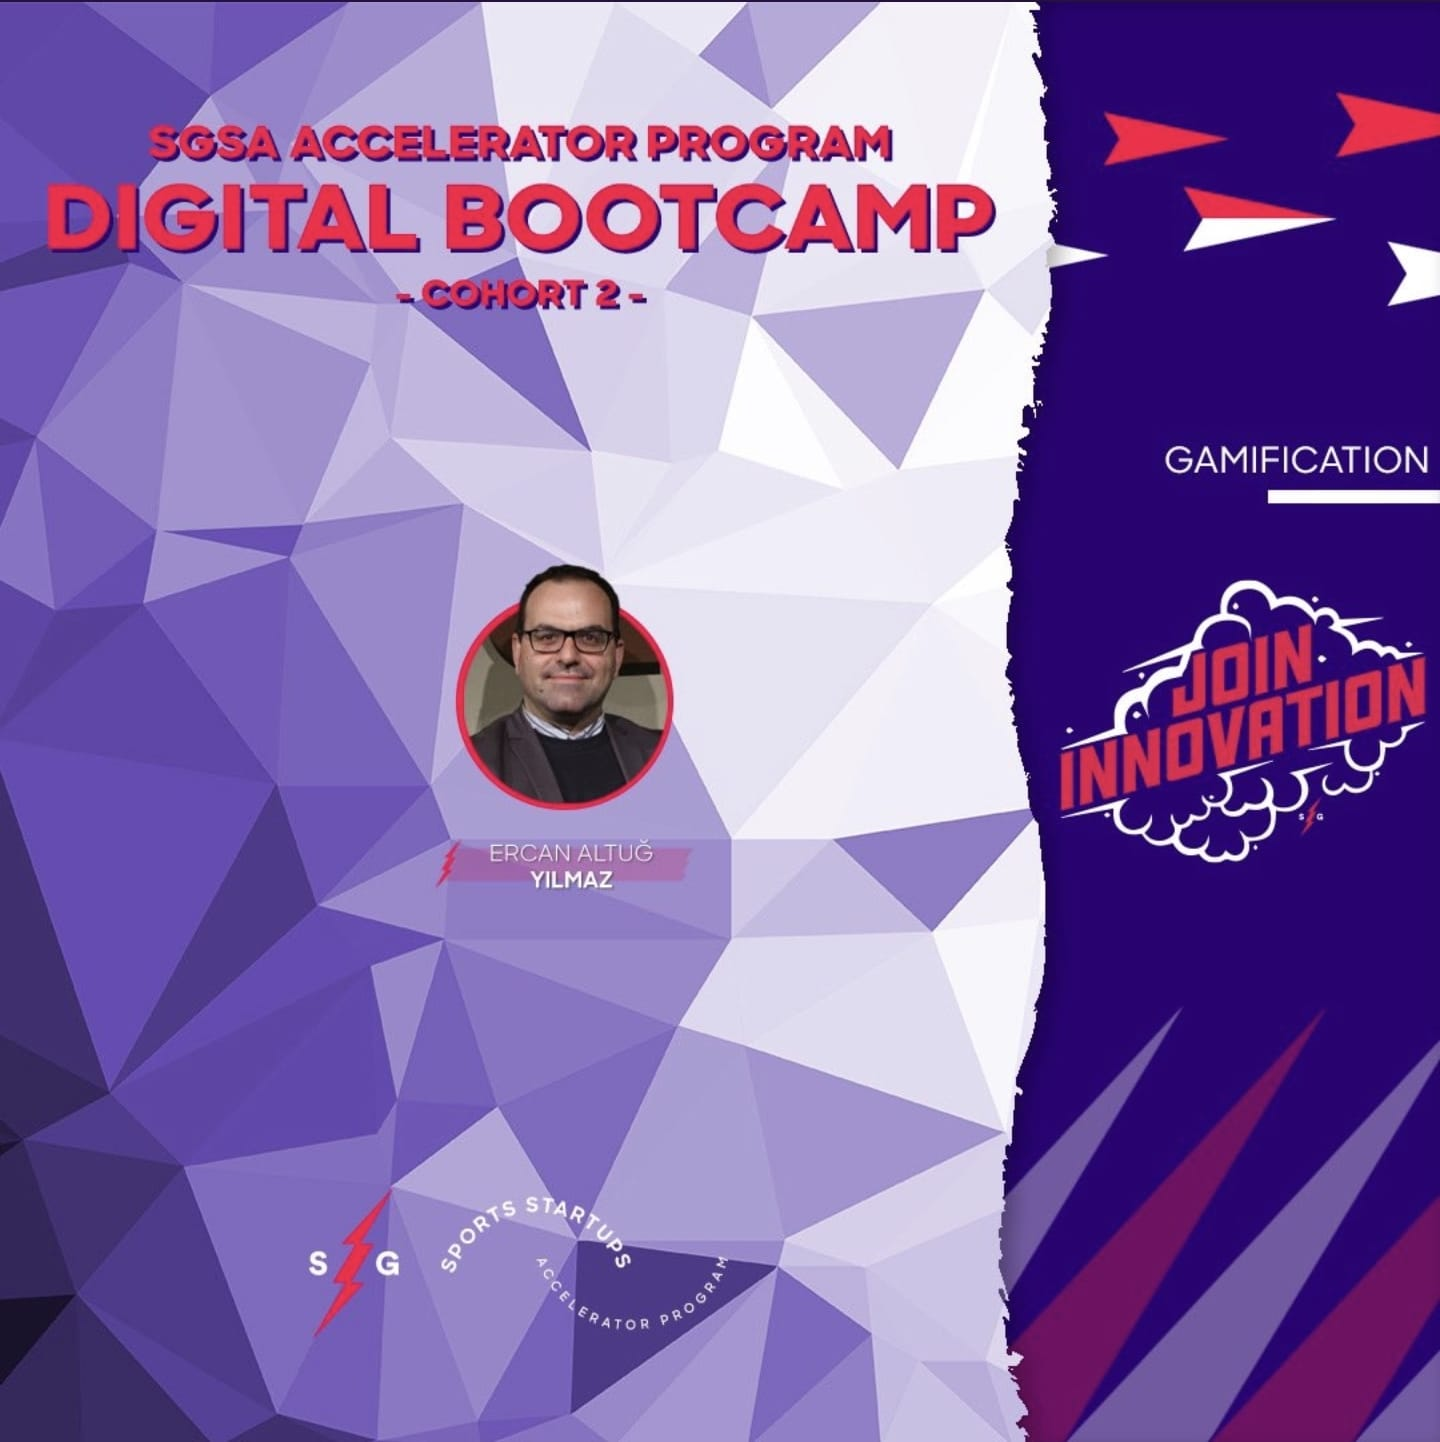 Digital Bootcamp Cohort 2